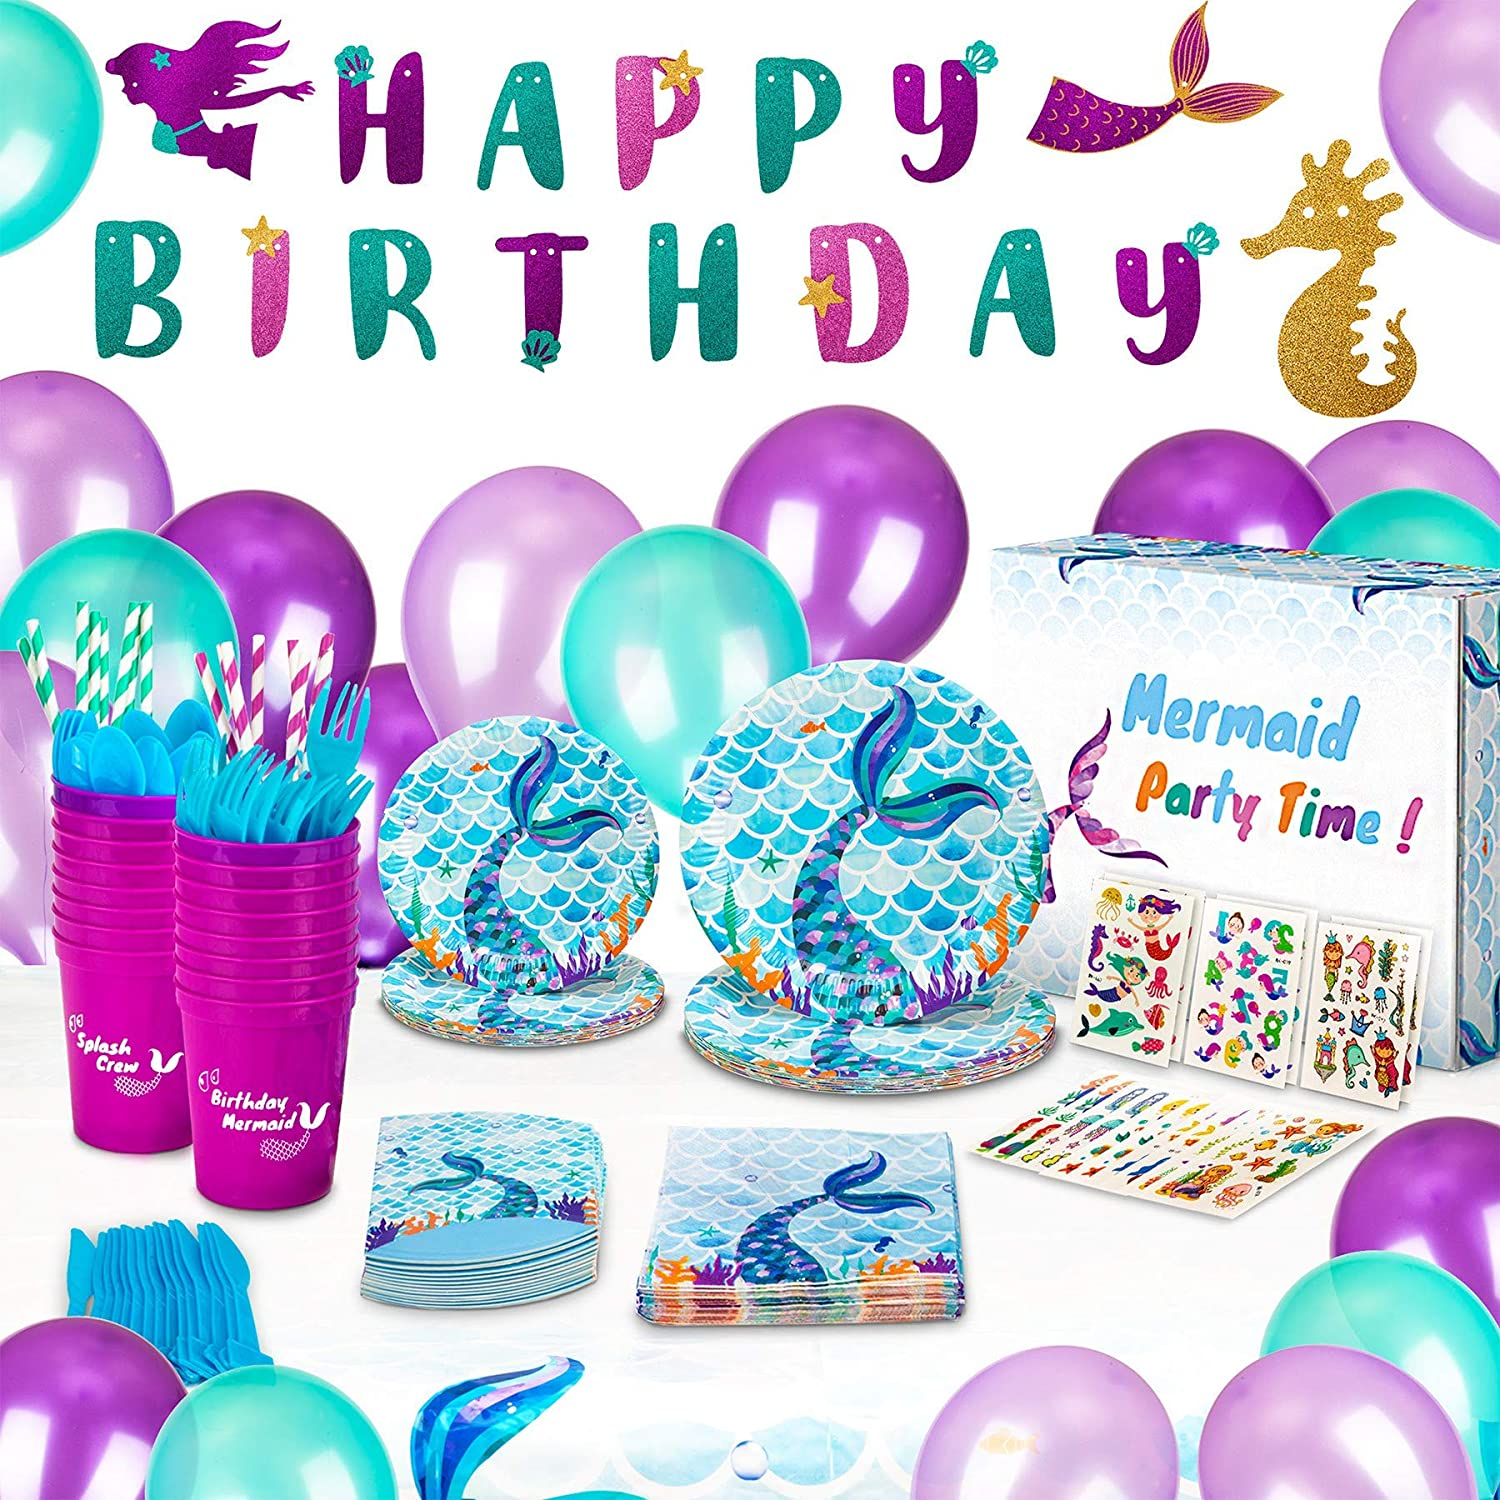 10 pcs First Birthday Favors, Mermaid Party Mermaid Birthday Frame Personalized Baby Frame Mermaid First Birthday Mermaid Favors